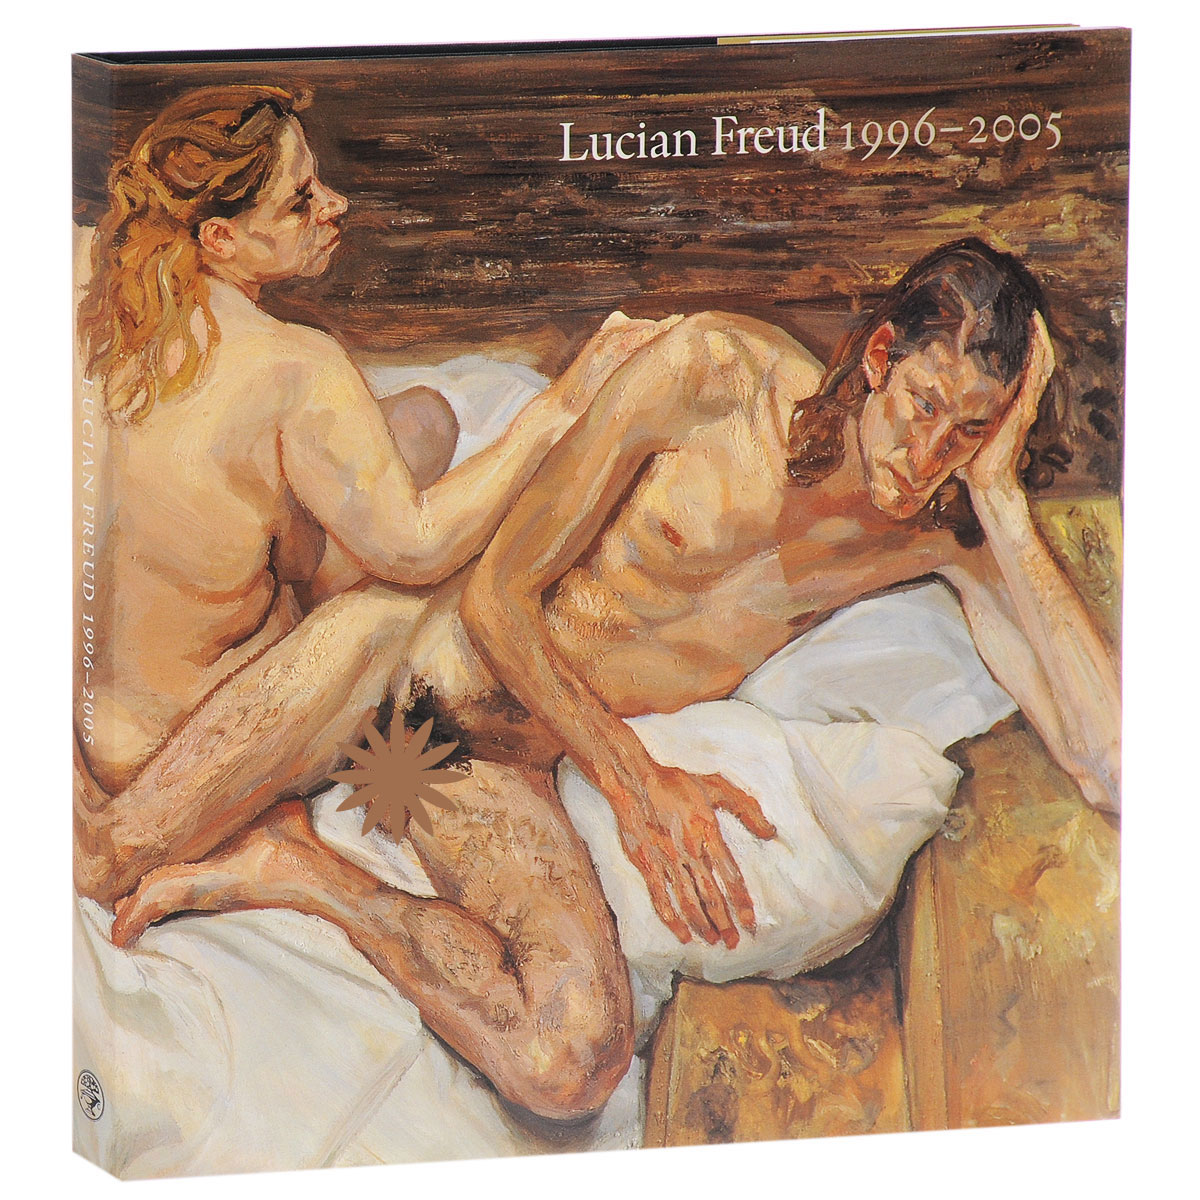 Lucian Freud: 1996-2005 one breath at a time